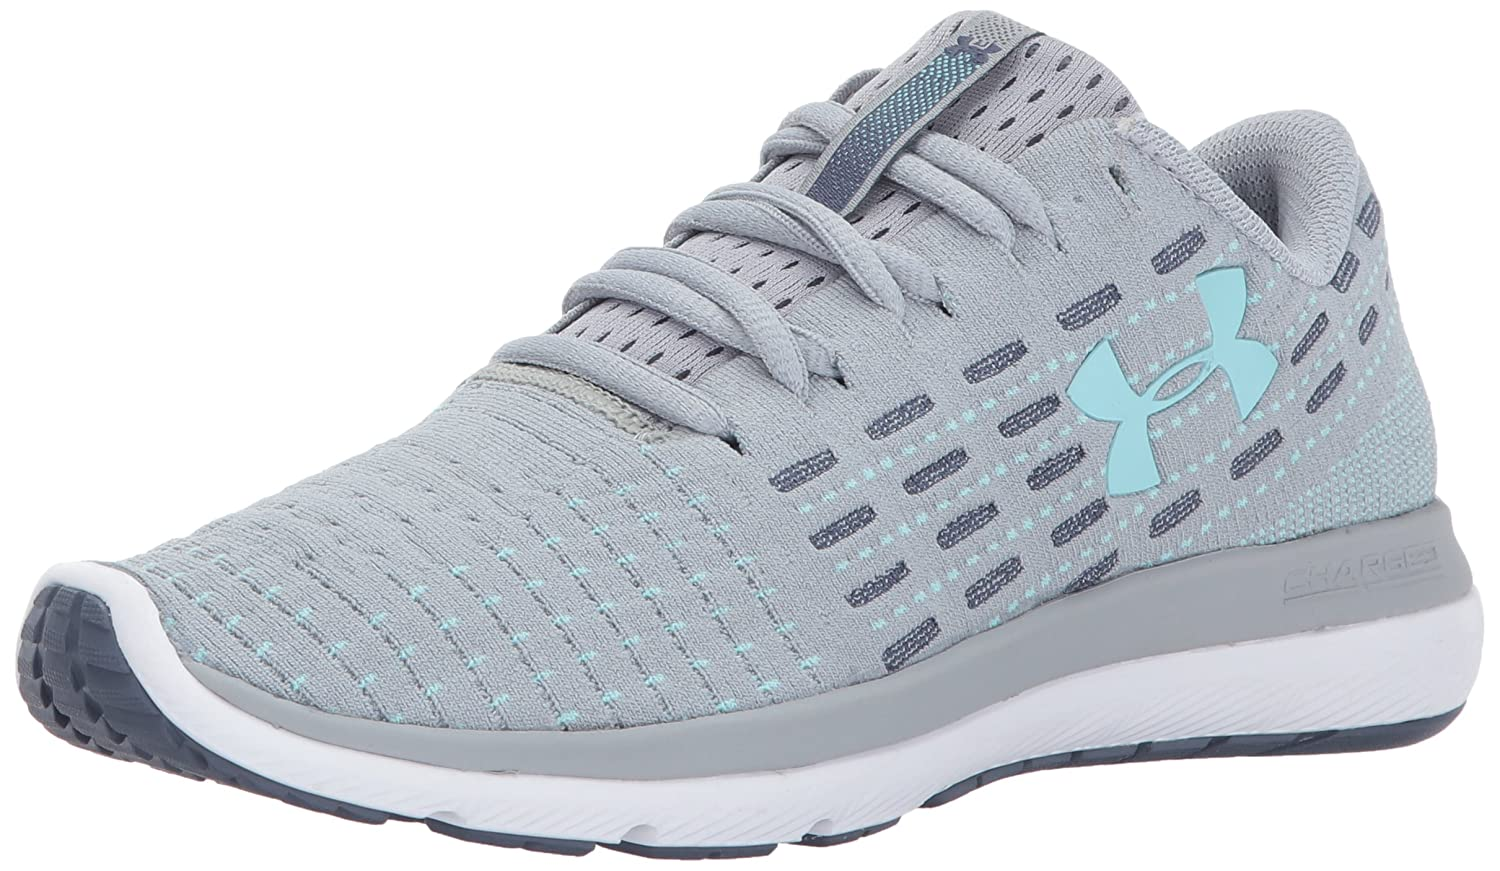 Under Armour レディース Under Armour Women's Slingflex Running Shoes B01MQVC1SX 9 C/D US|Overcast Gray Overcast Gray 9 C/D US